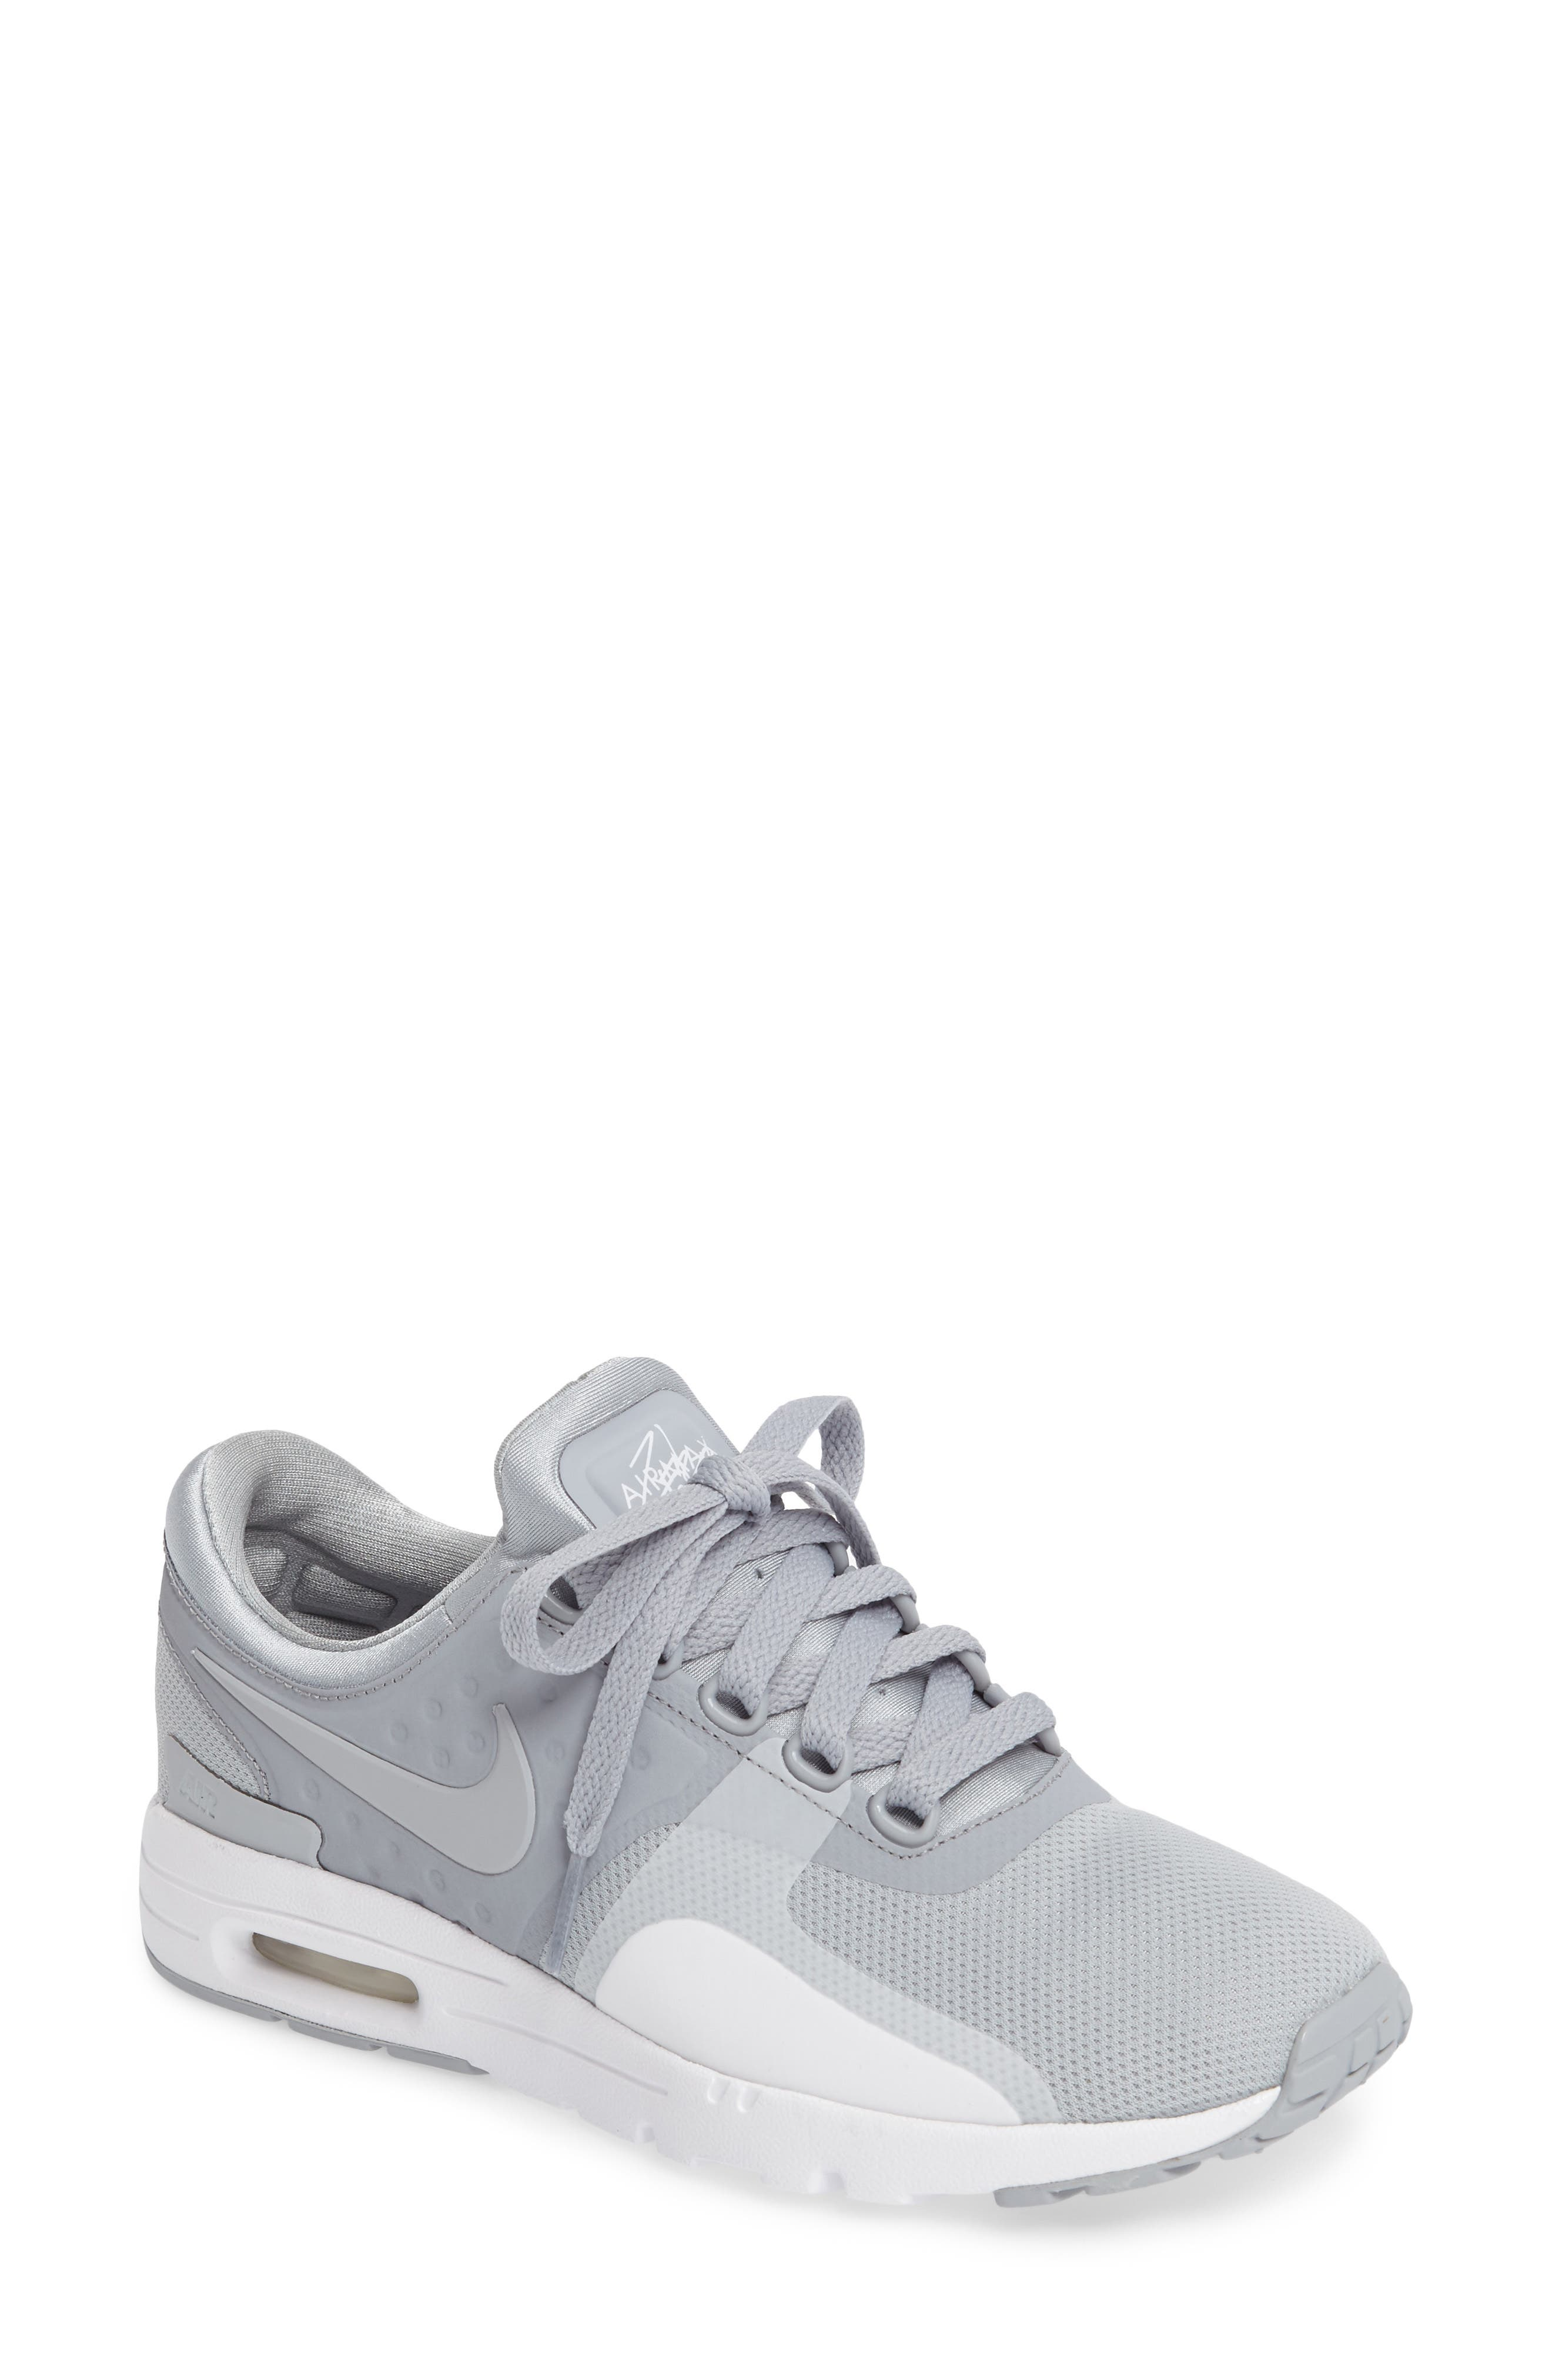 Air Max Zero Sneaker,                             Main thumbnail 1, color,                             Wolf Grey/ Wolf Grey/ White